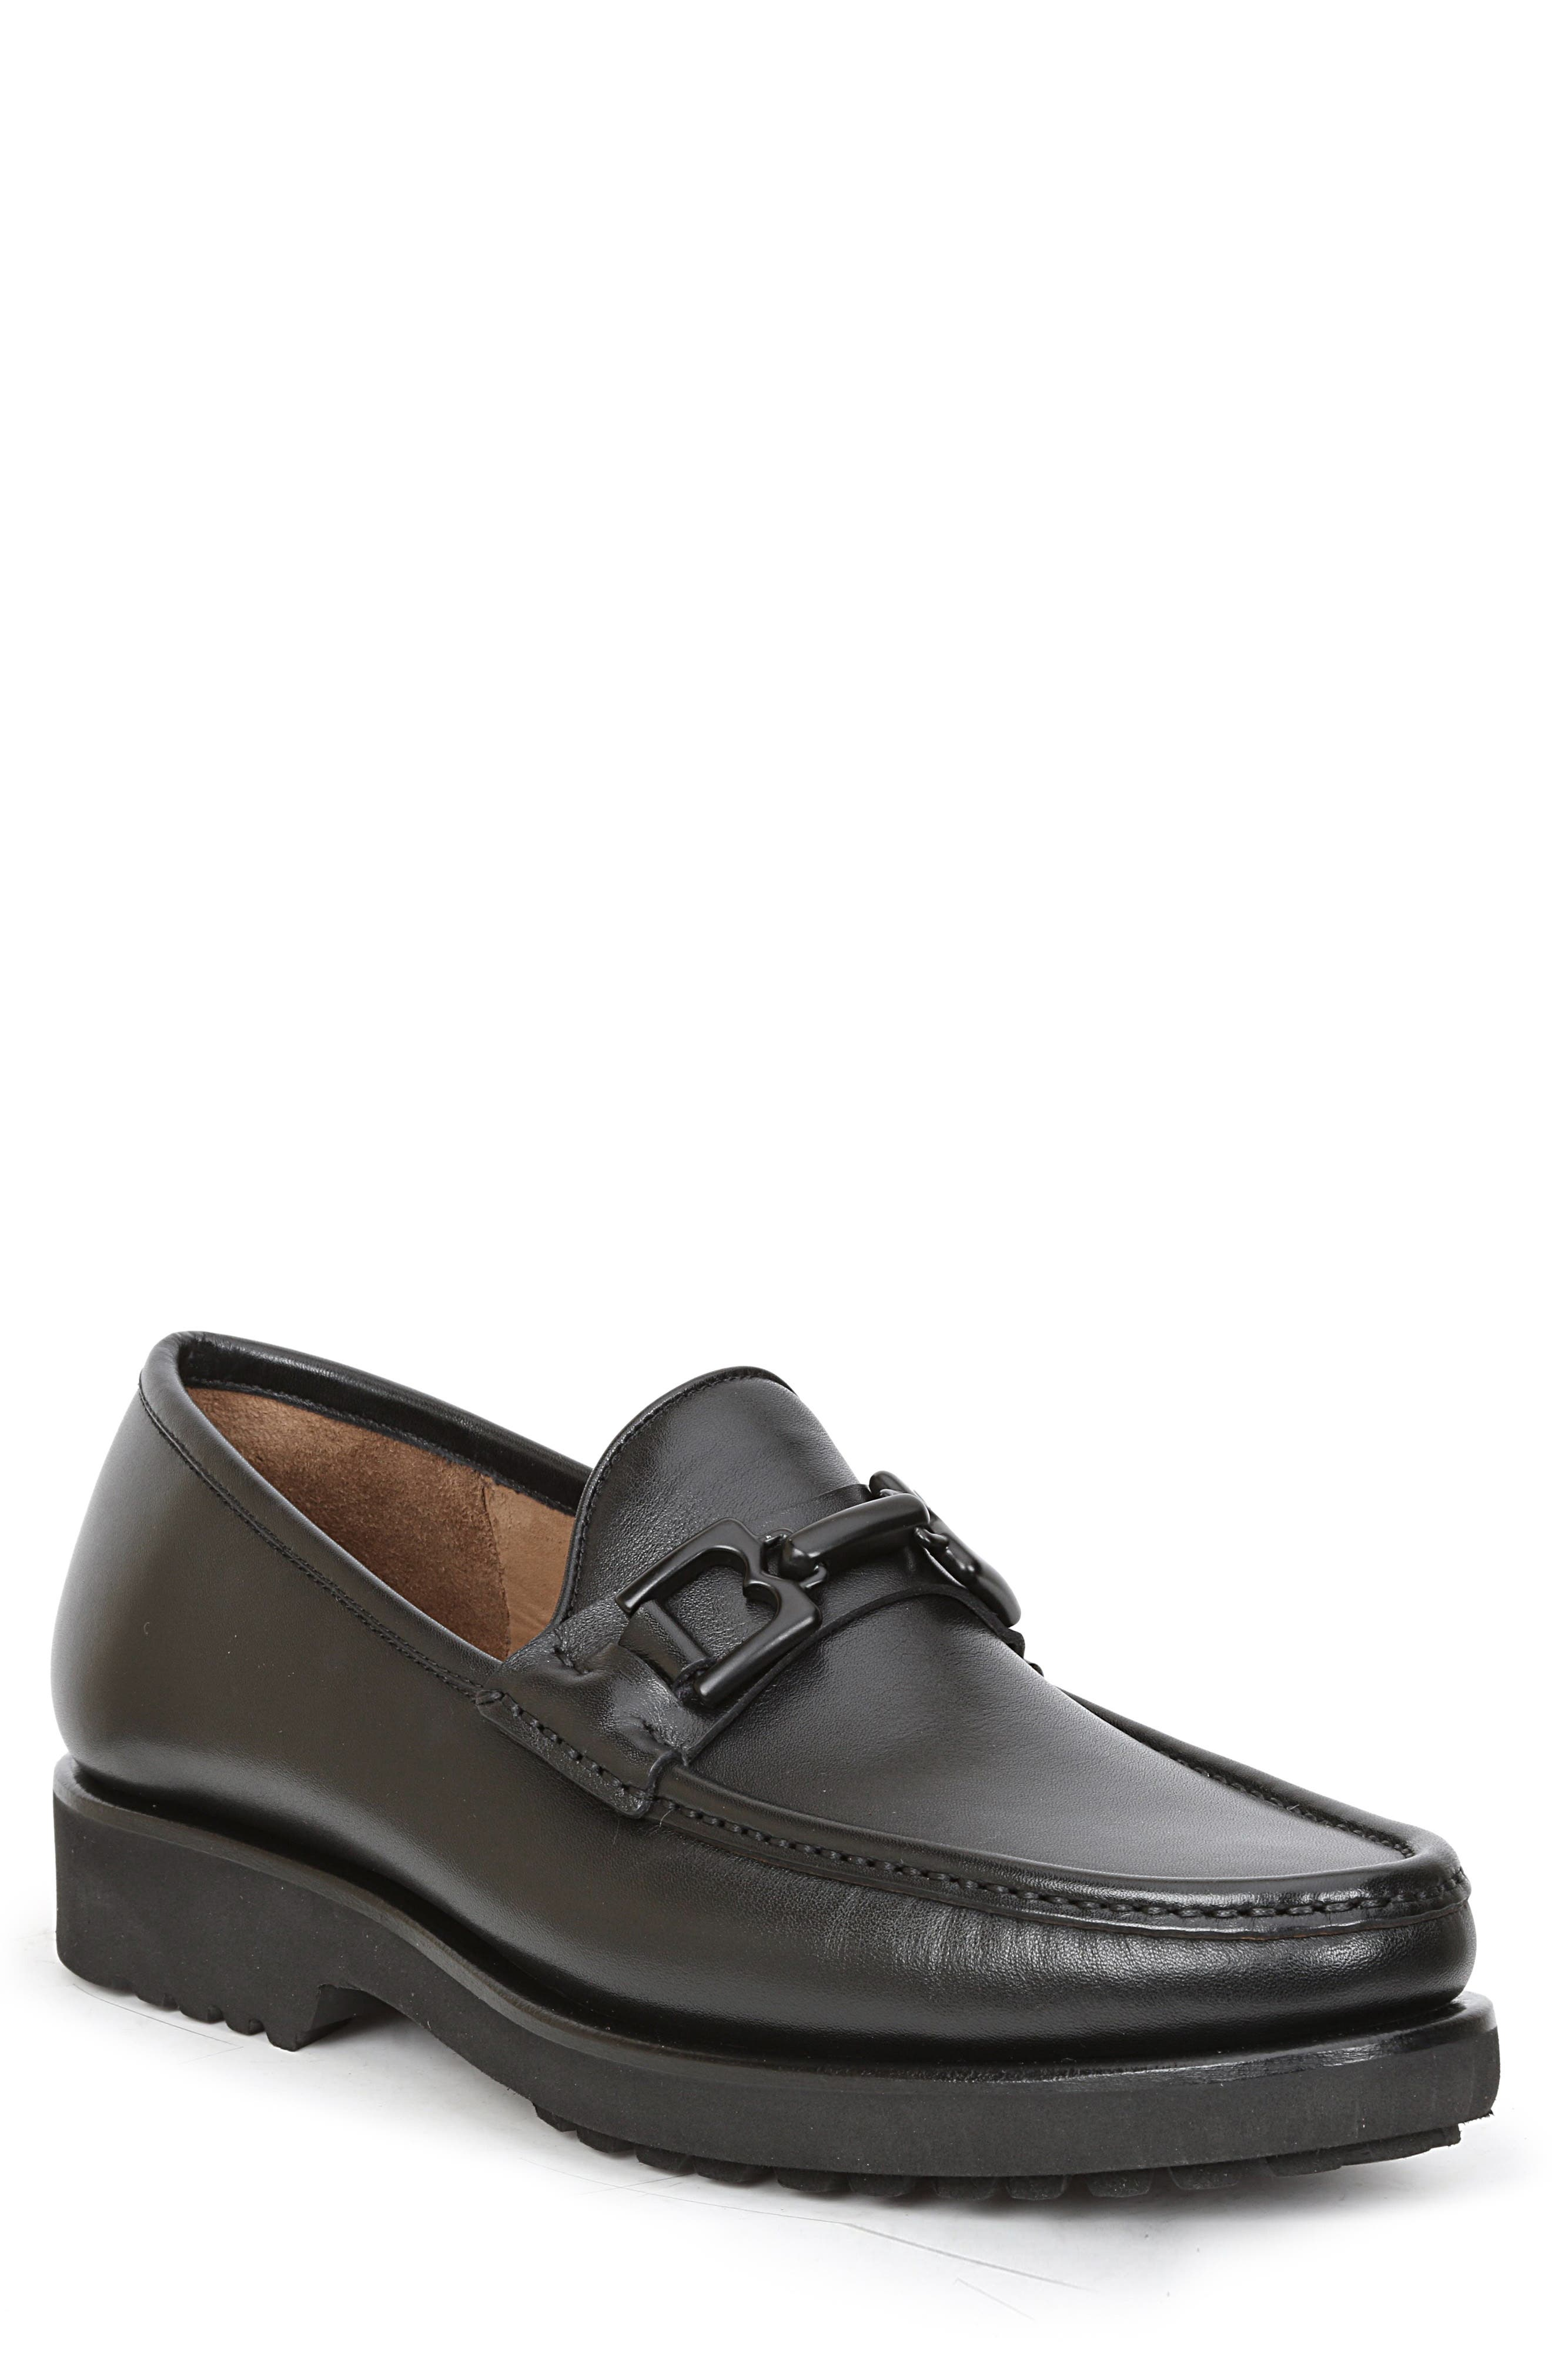 Falcone Lugged Bit Loafer,                         Main,                         color, BLACK